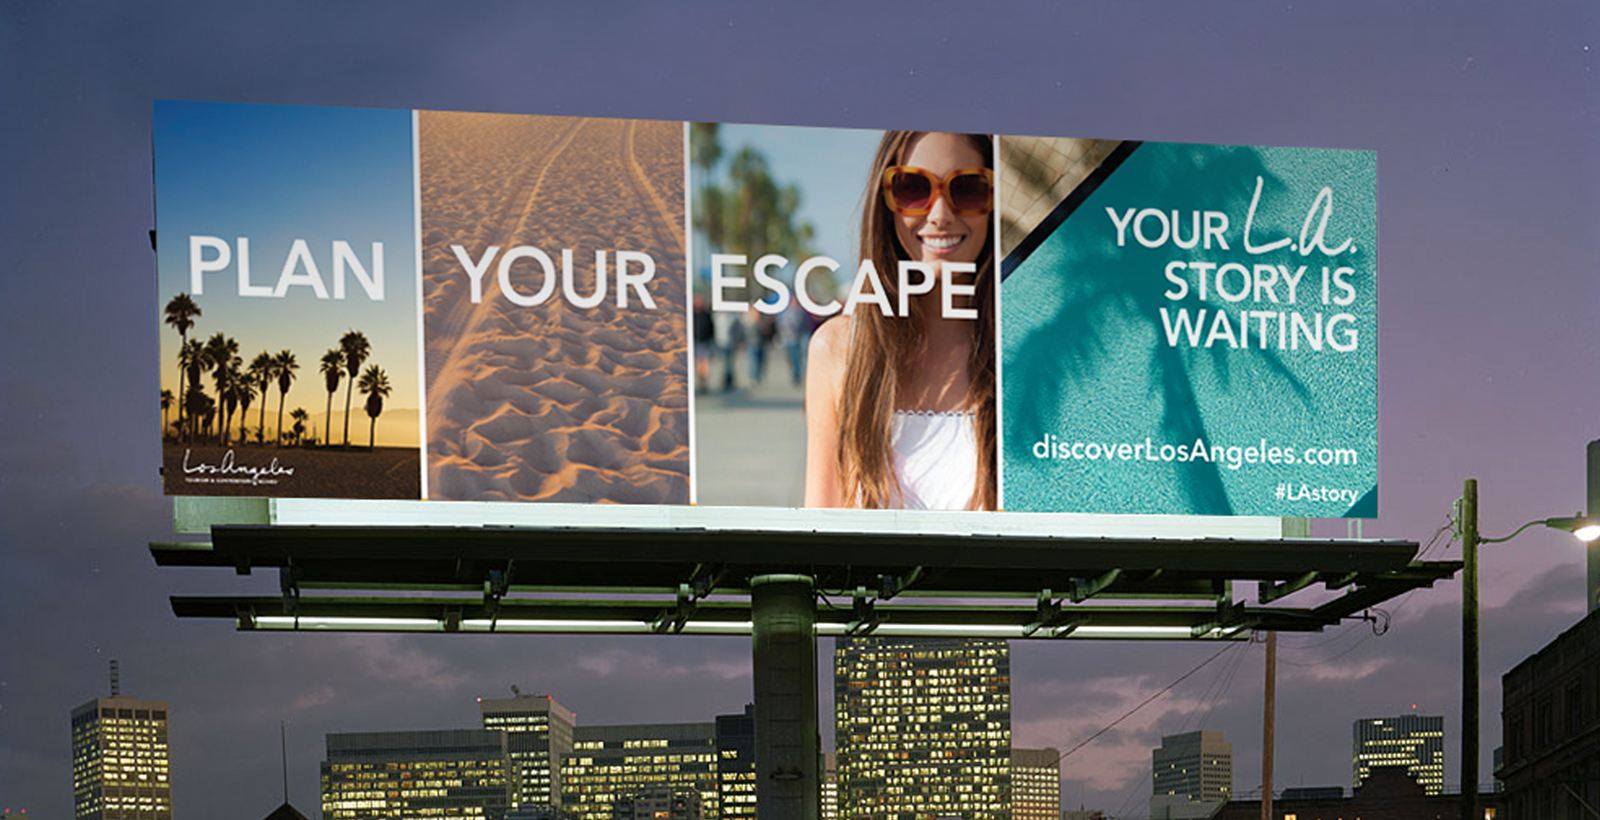 LA Tourism Billboard Ad Plan your escape your LA story is waiting